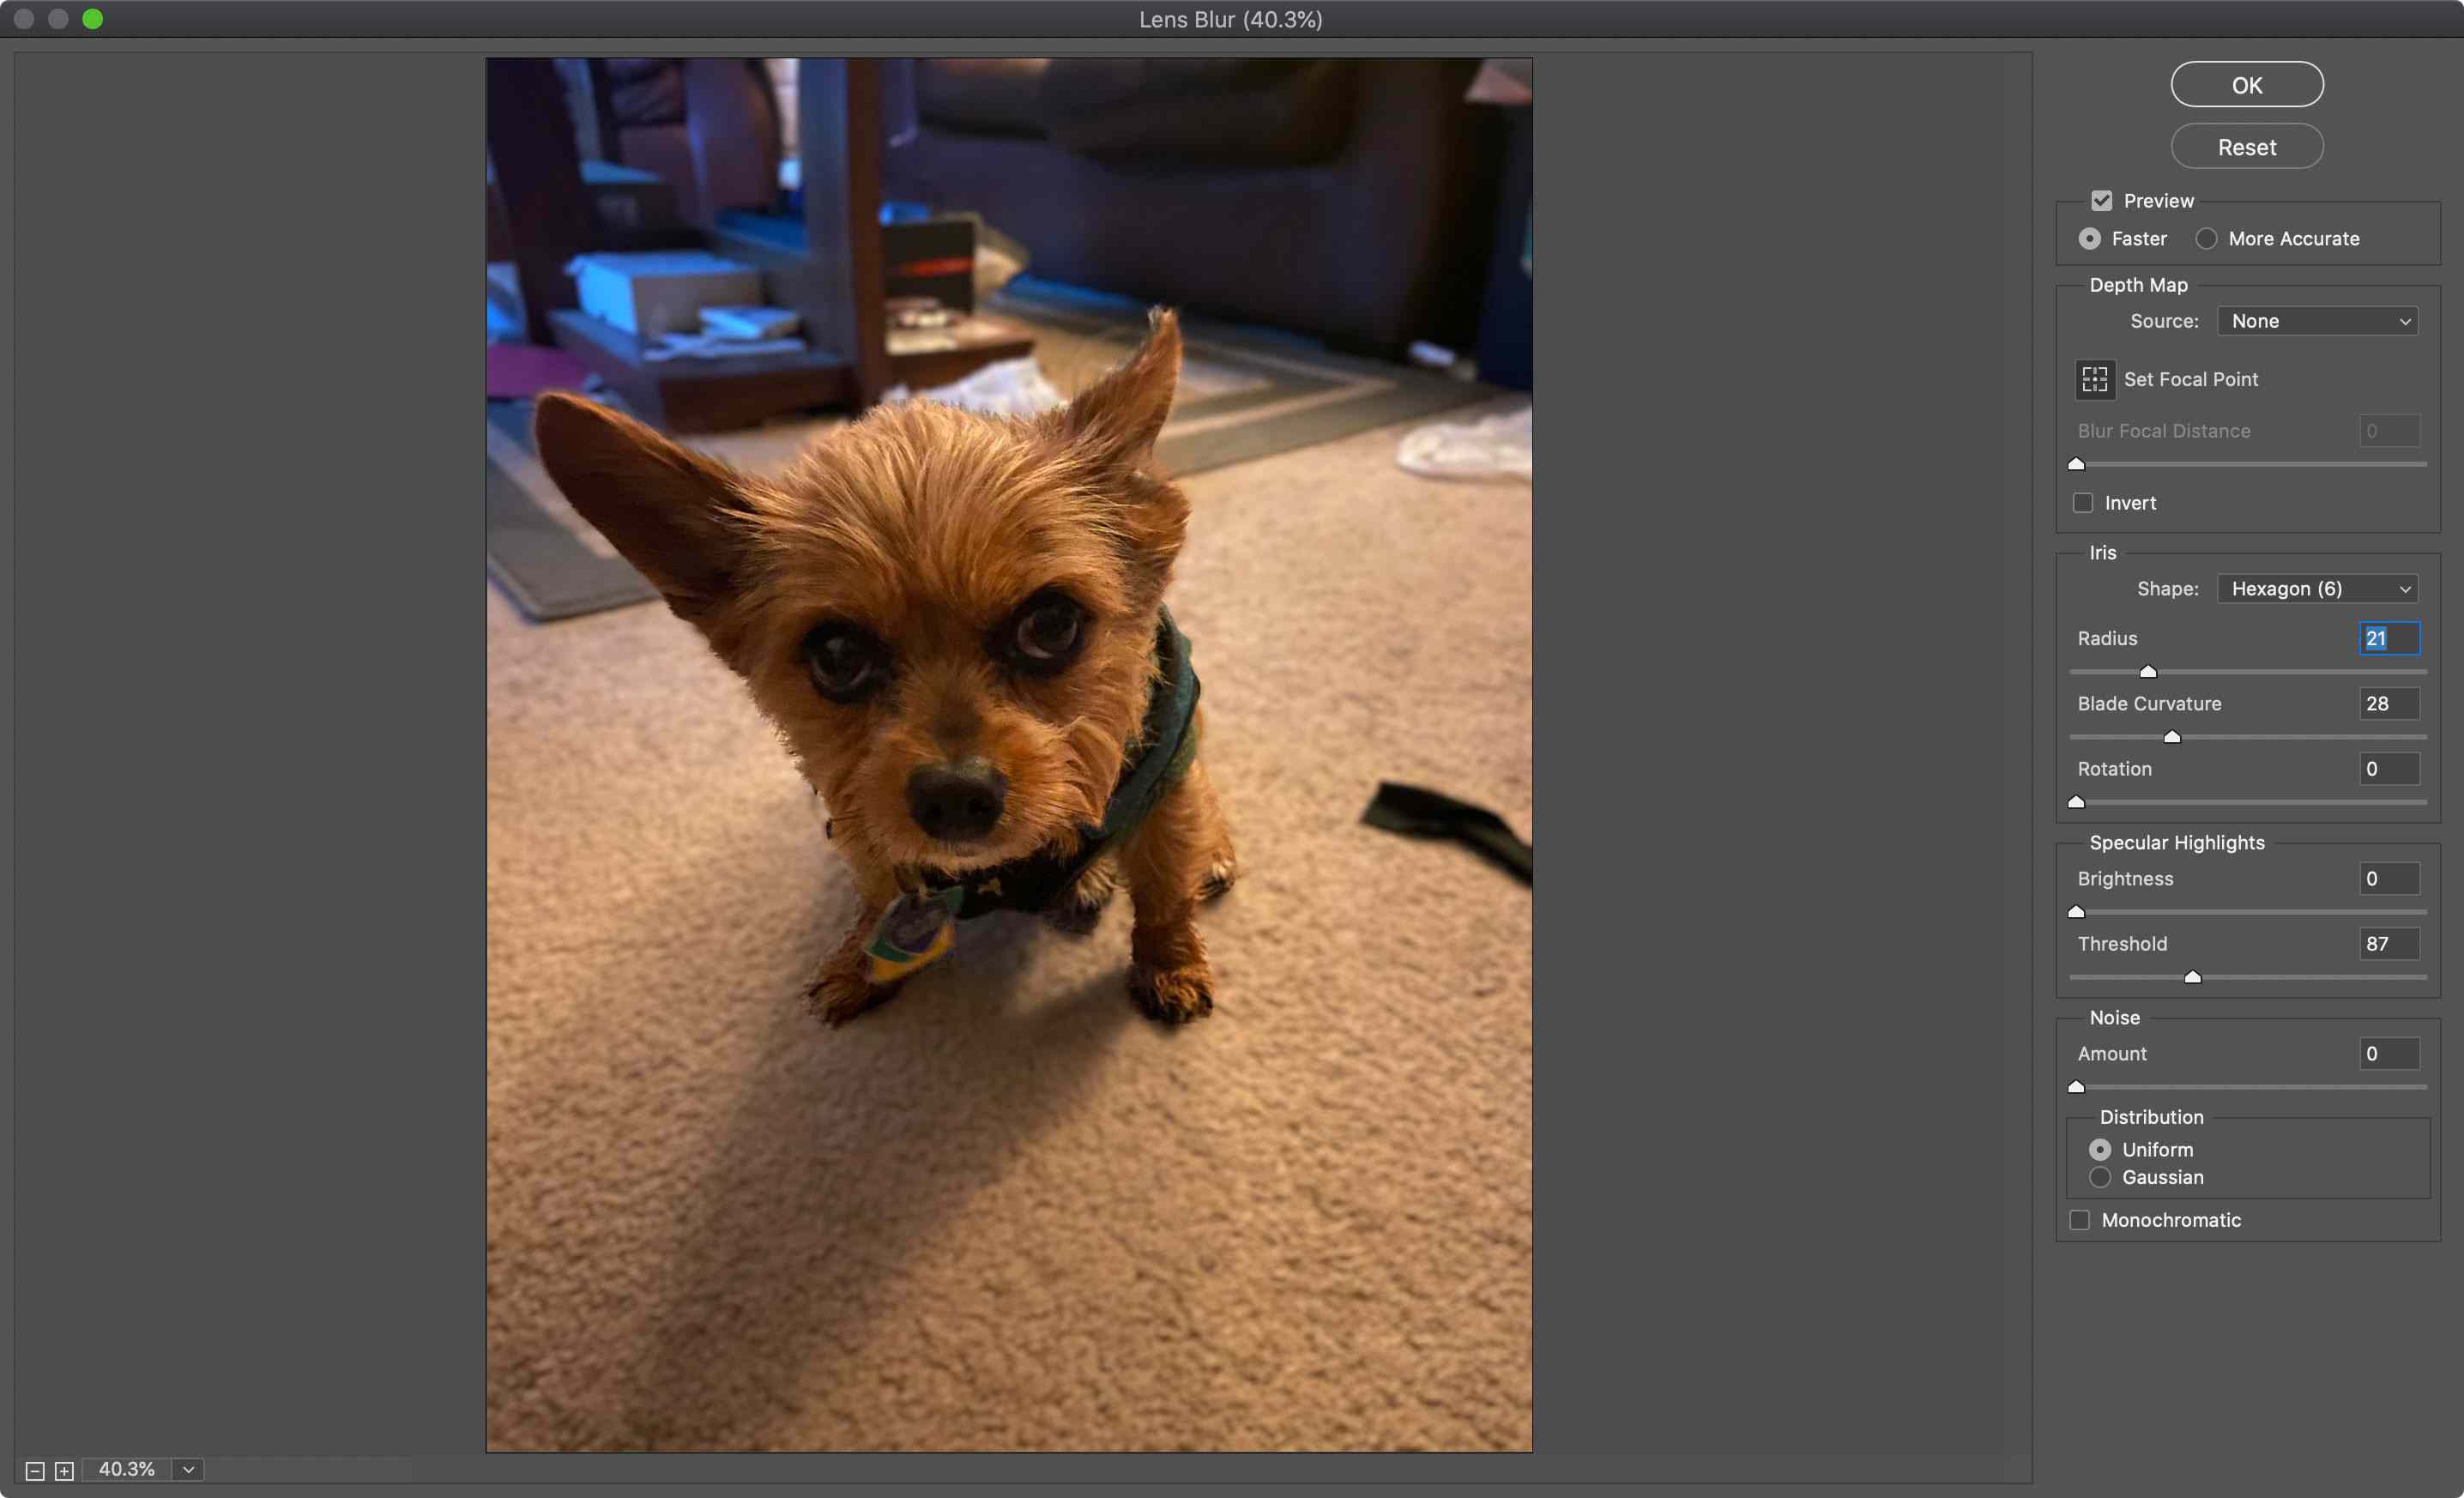 Lens Blur options in Photoshop